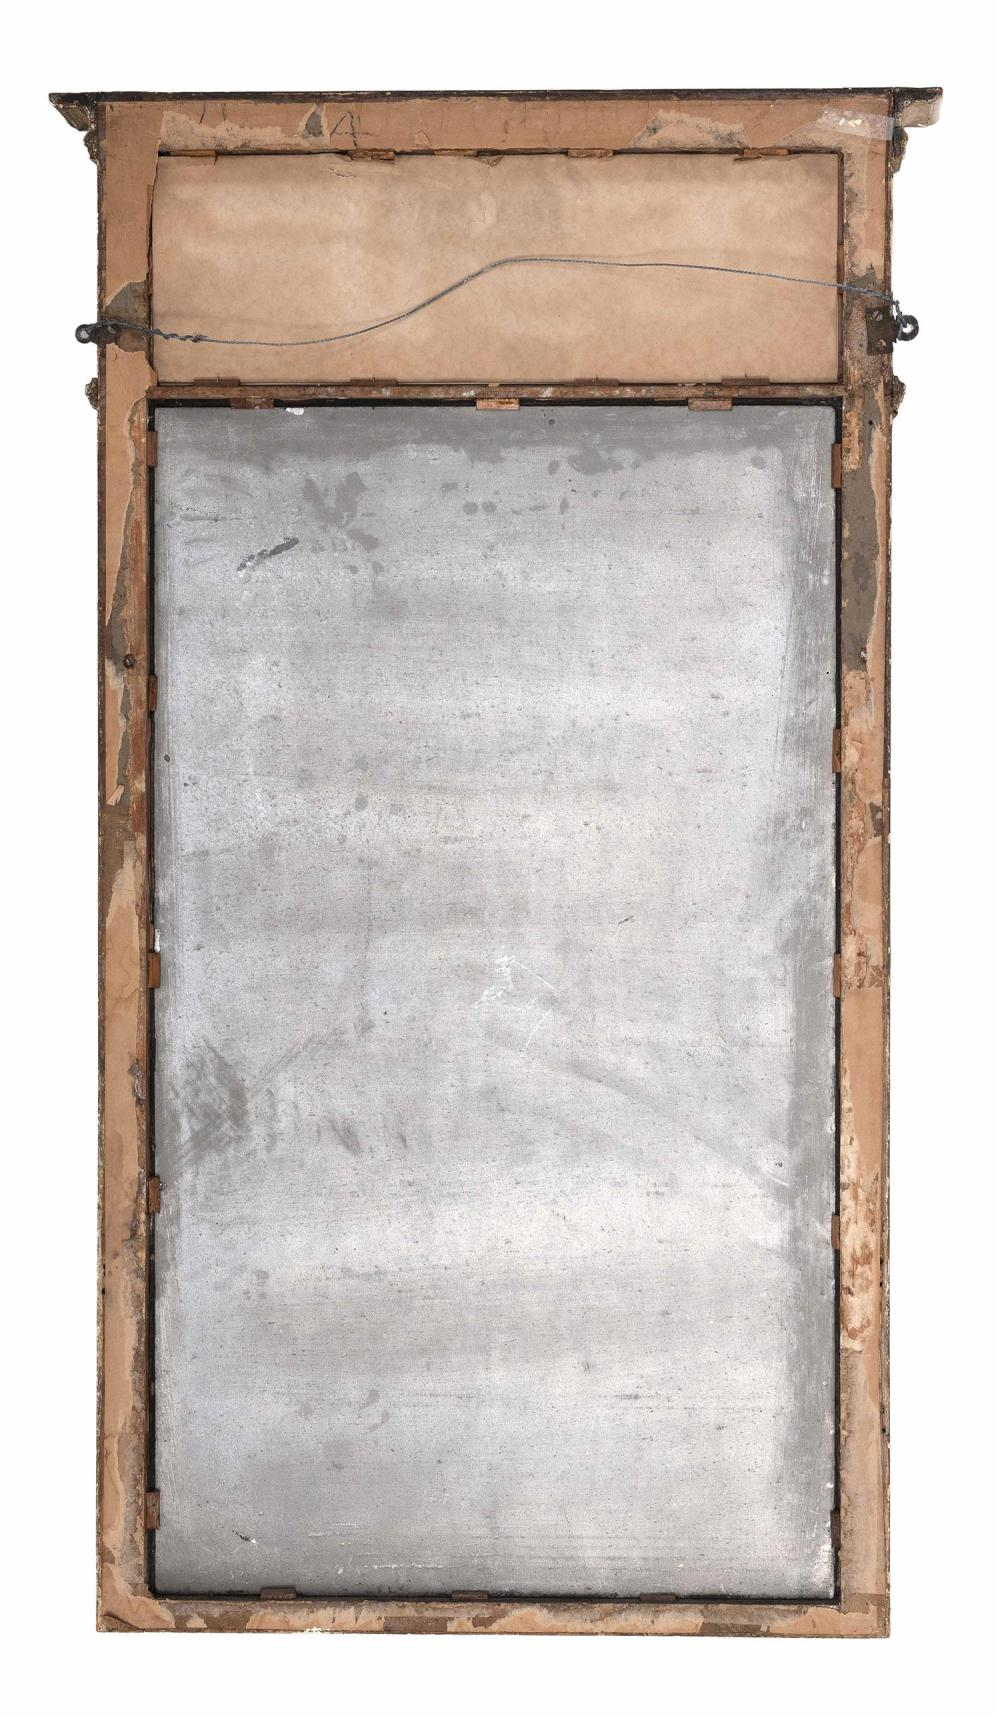 FEDERAL-STYLE PIER MIRROR Reverse-painted upper tablet depicts classical ruins. Gilt frame. Height 50